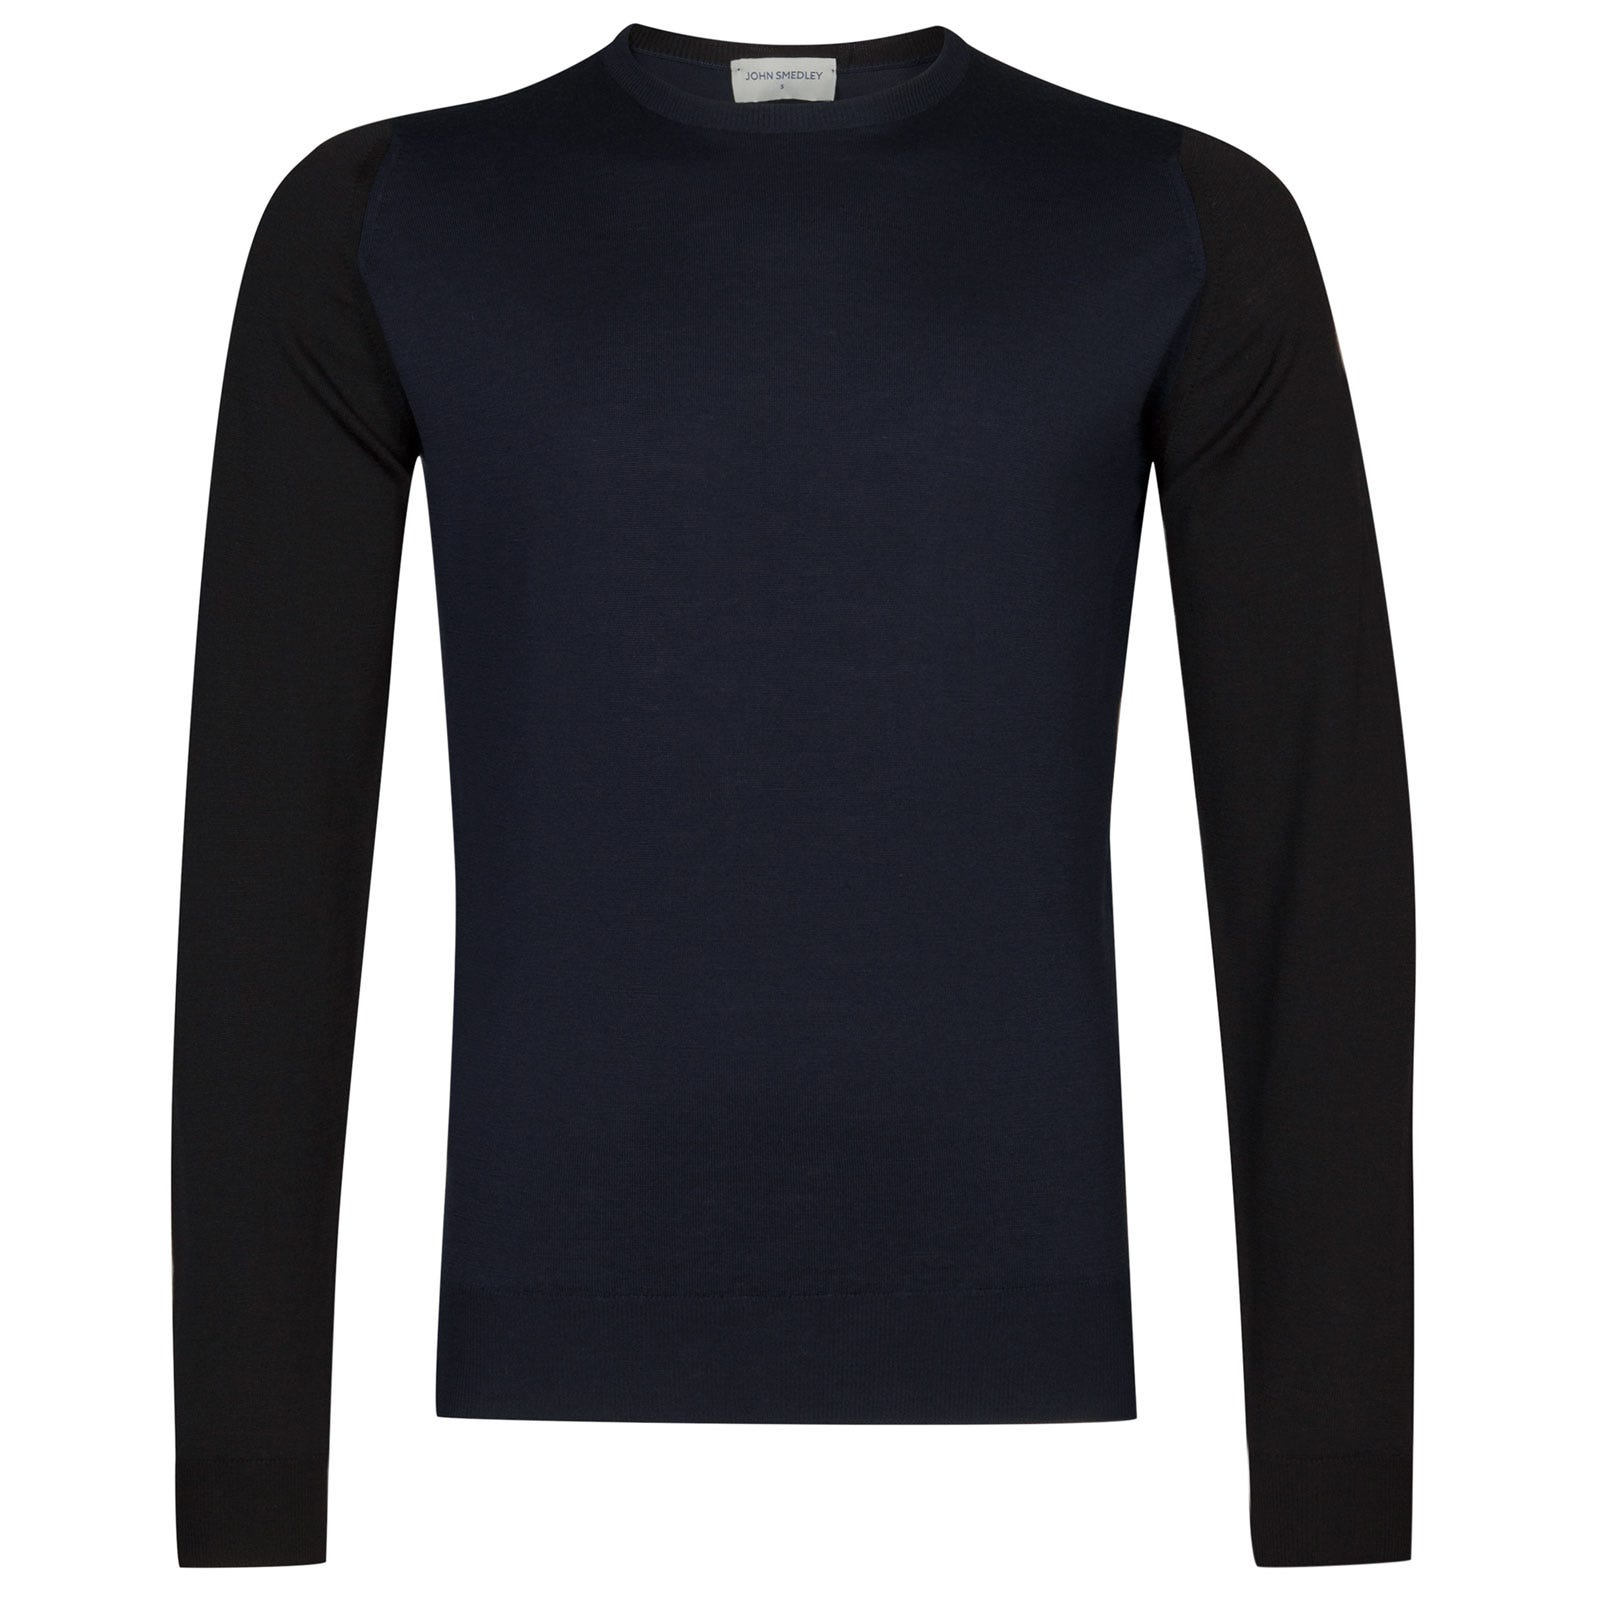 John Smedley hindlow Merino Wool Pullover in Black/Midnight-XXL